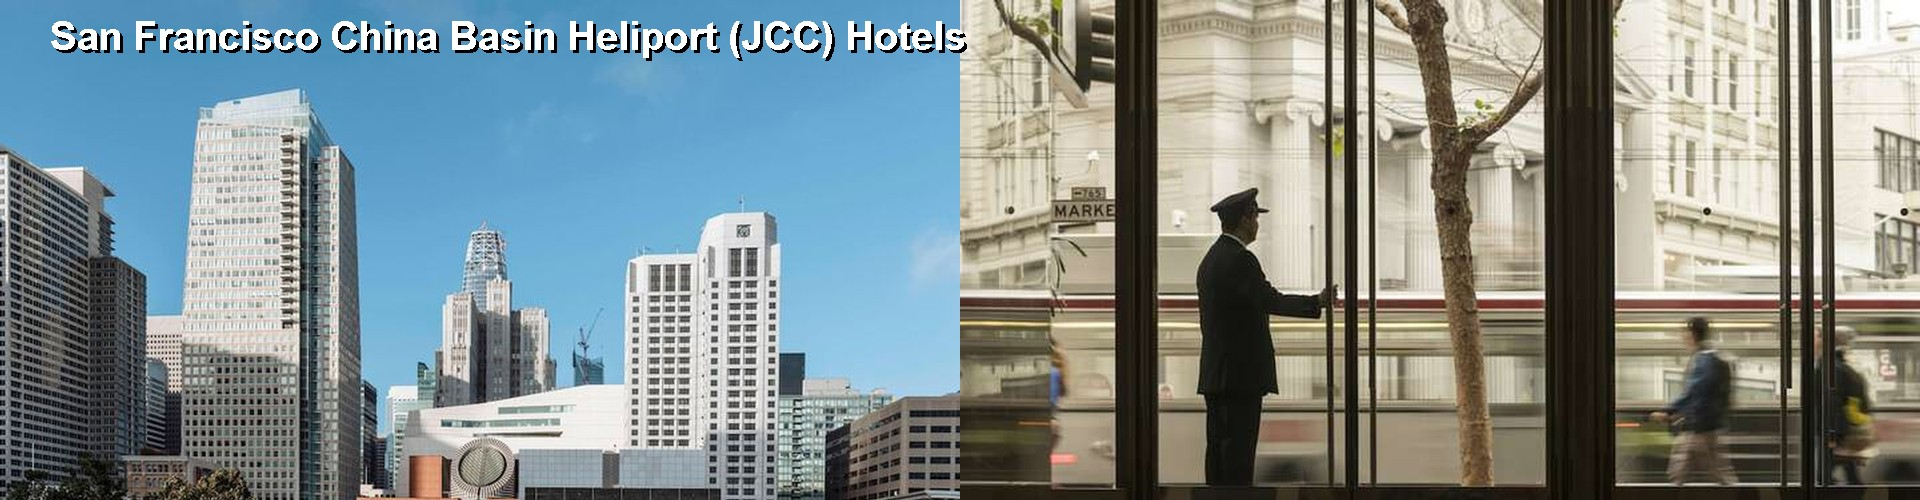 4 Best Hotels near San Francisco China Basin Heliport (JCC)